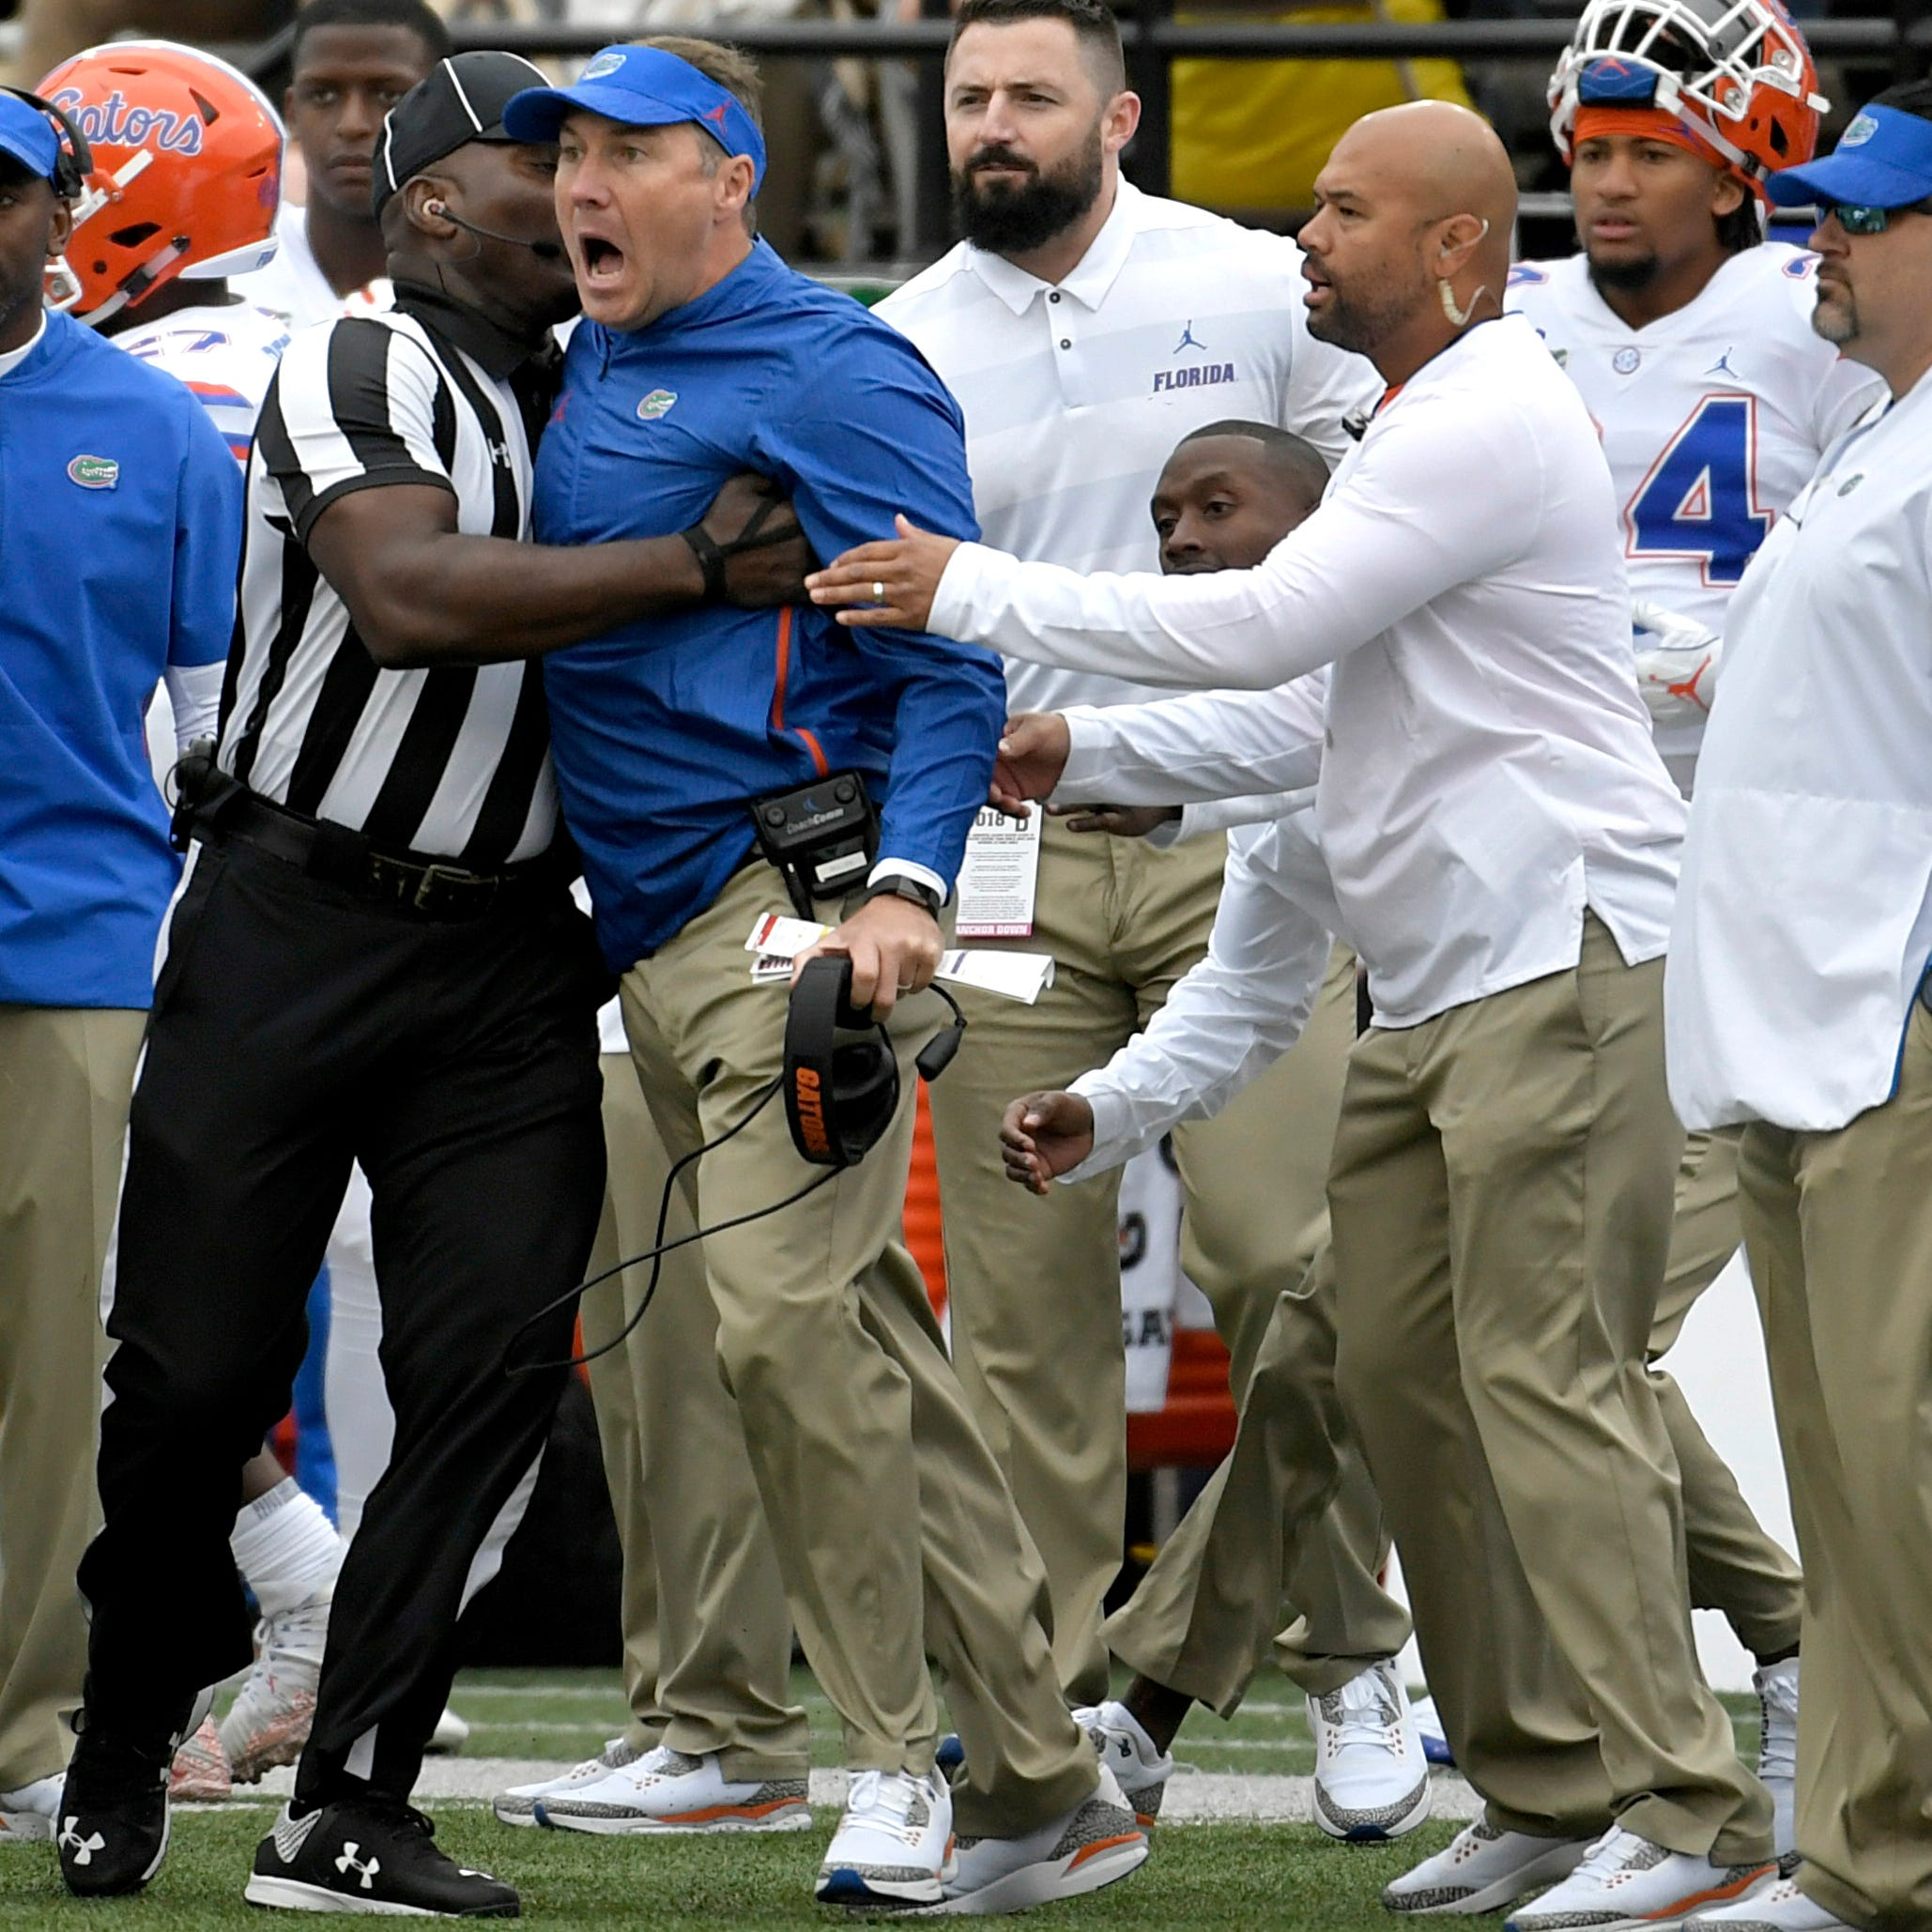 SEC not punishing Florida, Vanderbilt over Dan Mullen, Derek Mason confrontation